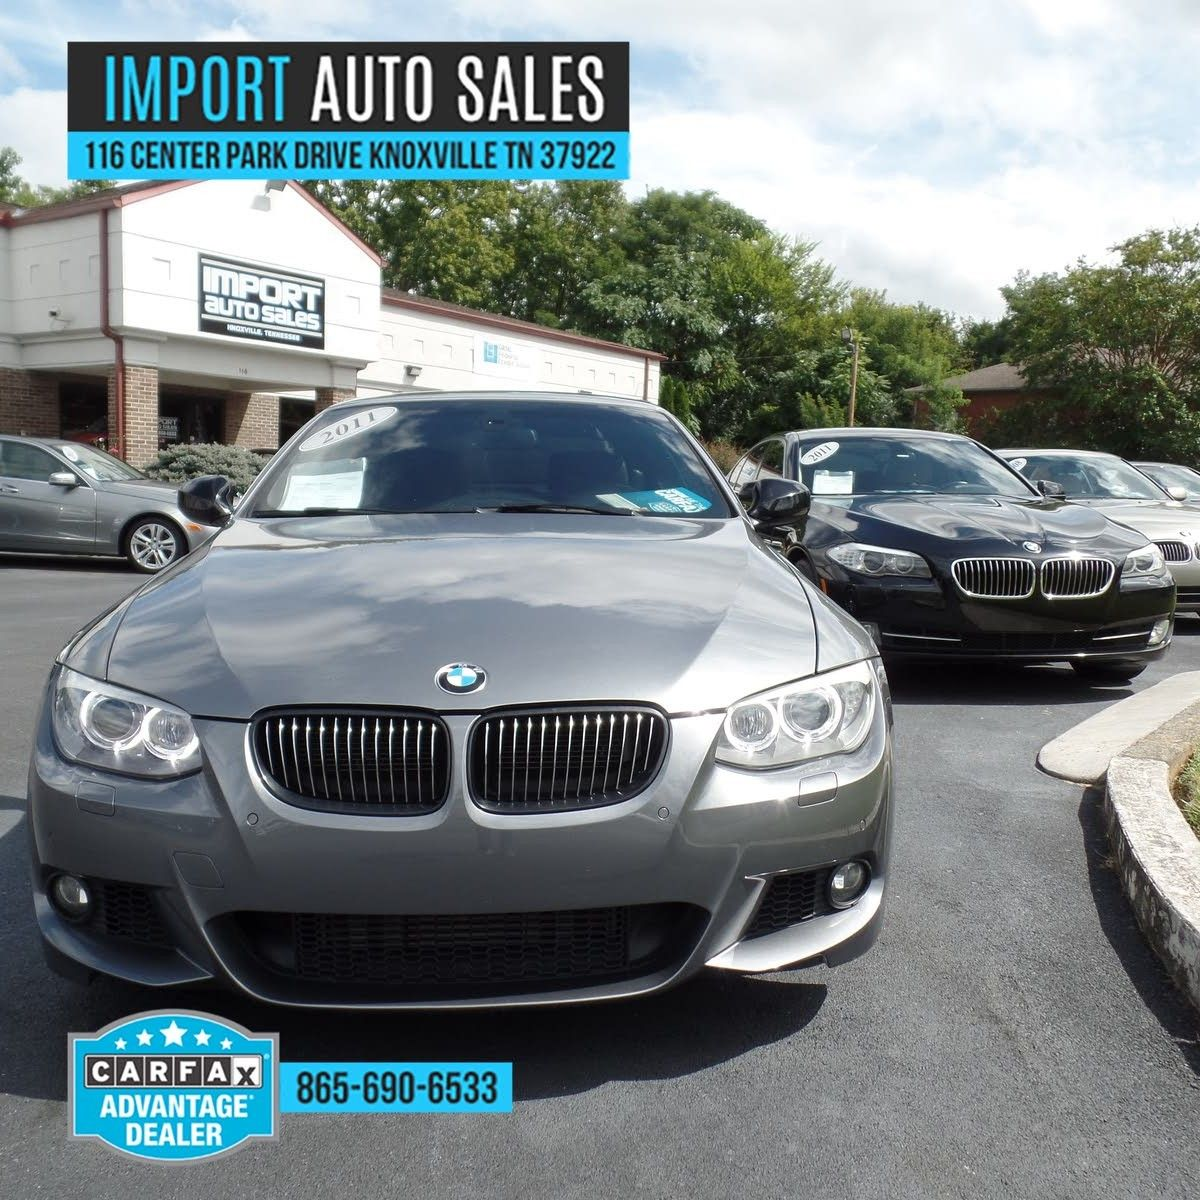 Knoxville Used Cars >> Best Of Carfax Used Cars Knoxville Tn Bmw Cars Used Cars